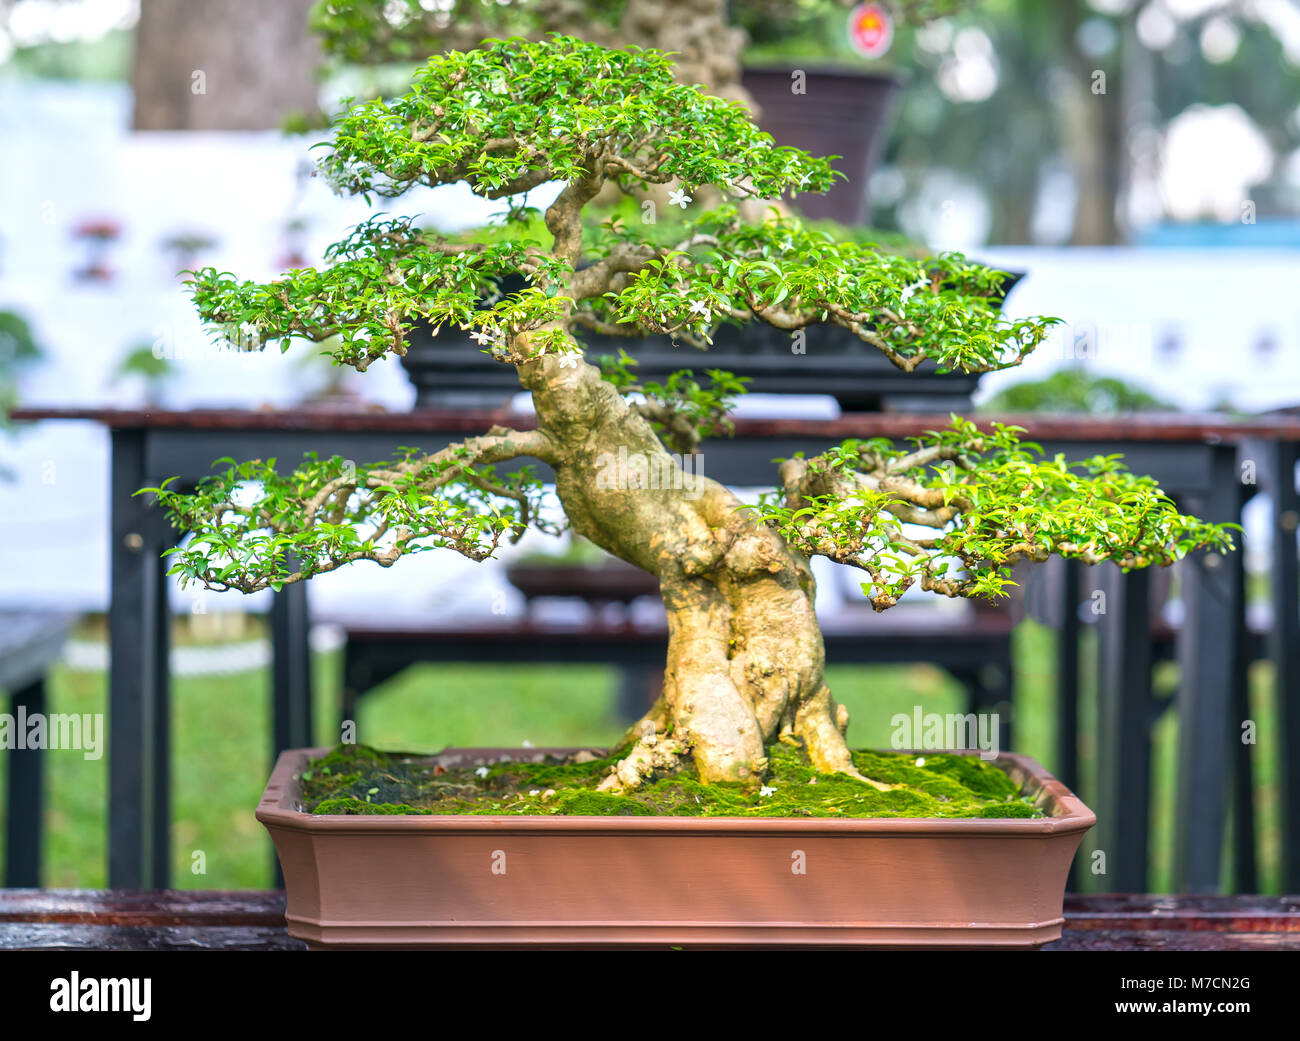 Page 2 Bonsai Rock High Resolution Stock Photography And Images Alamy